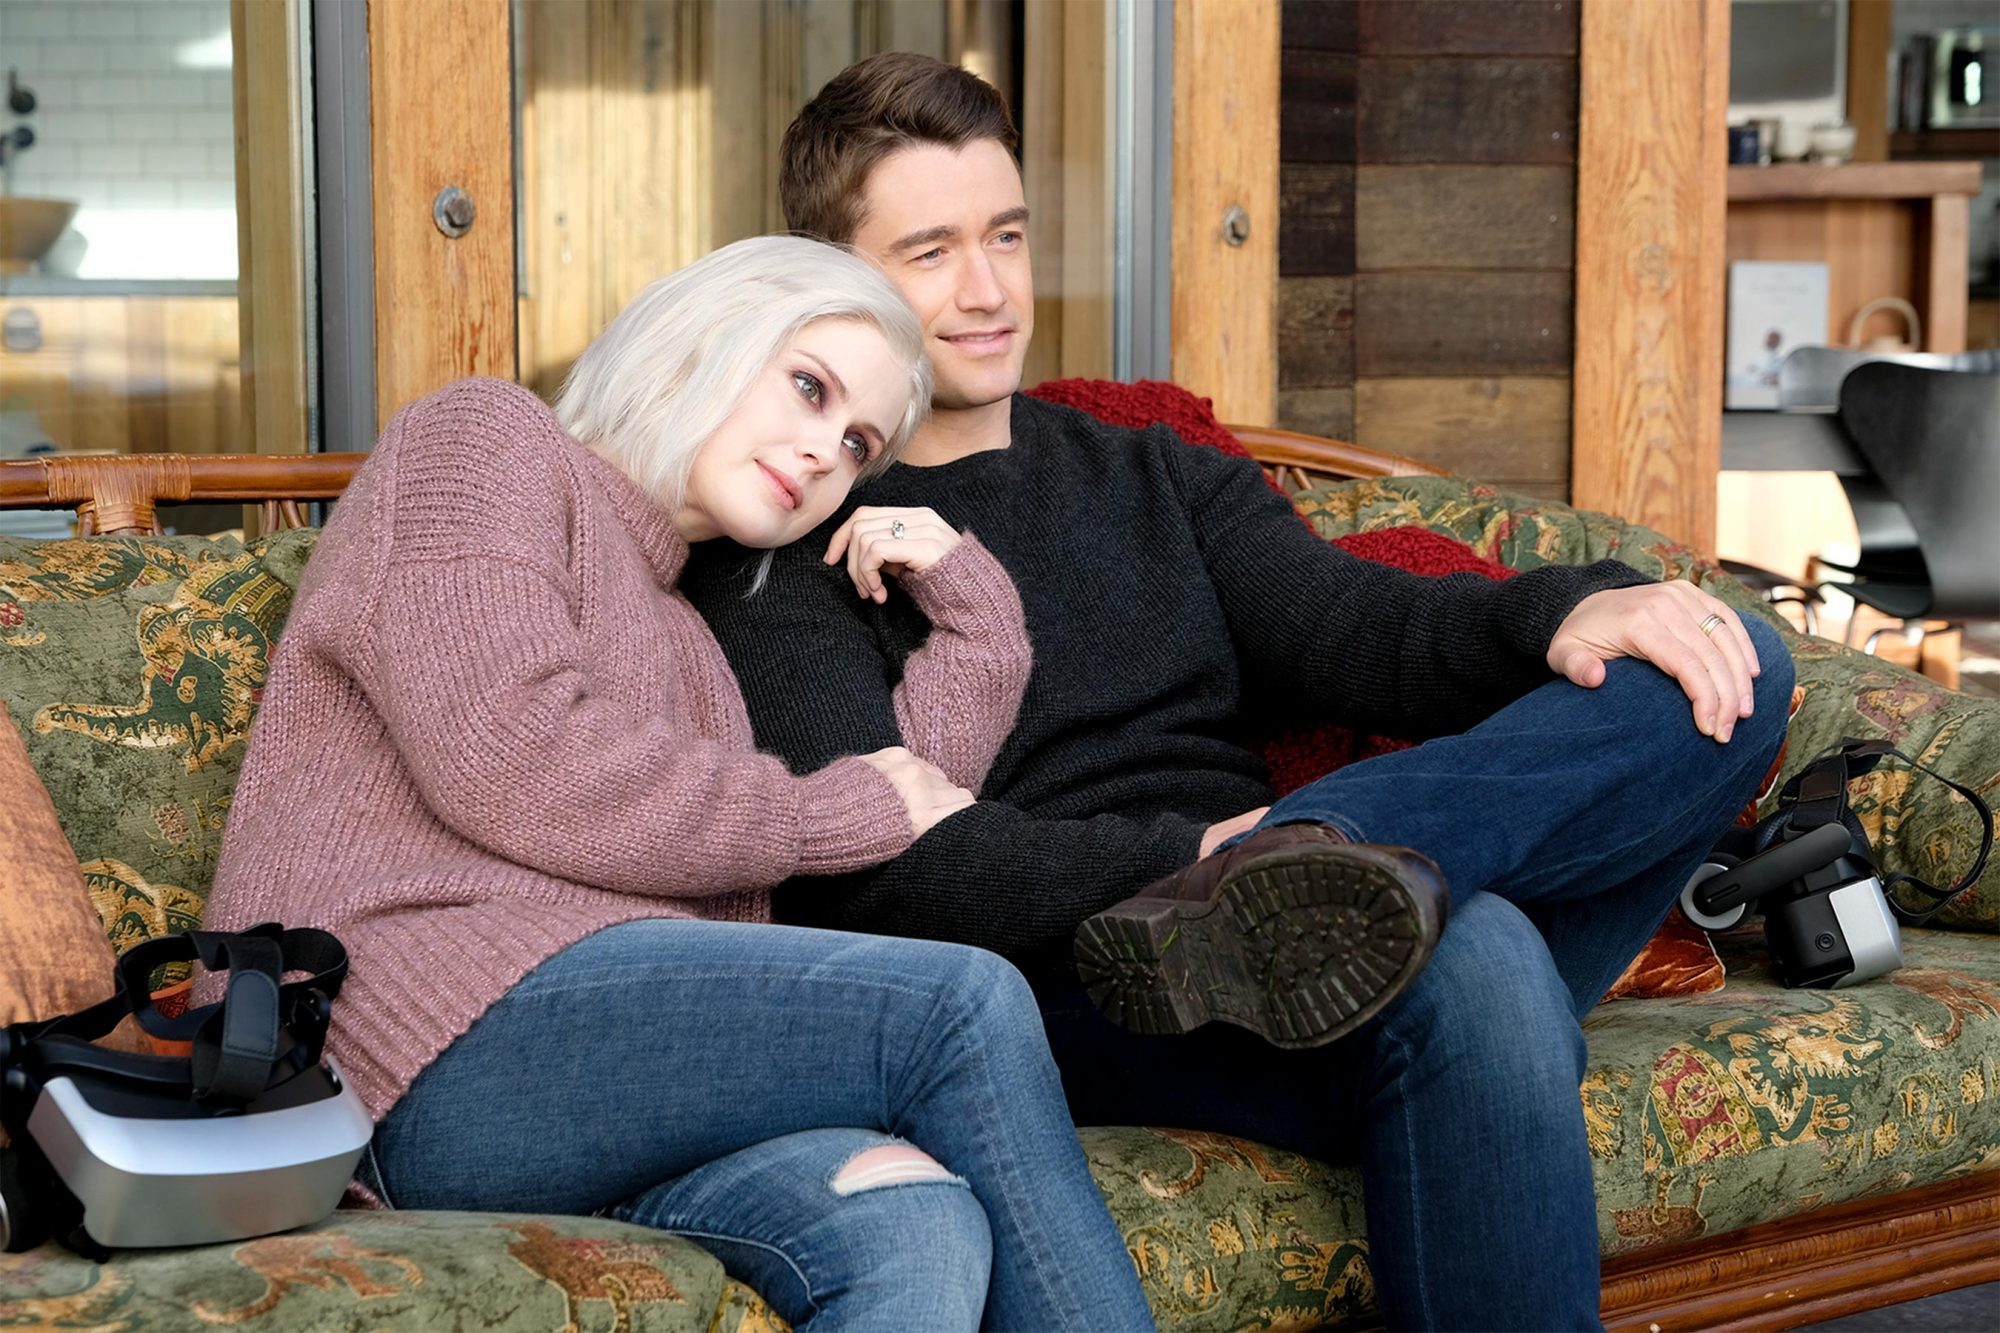 """iZombie -- """"All's Well That Ends Well"""" -- Image Number: ZMB513c_0069b.jpg -- Pictured (L-R): Rose McIver as Liv and Robert Buckley as Major -- Photo Credit: Bettina Strauss/The CW -- © 2019 The CW Network, LLC. All Rights Reserved."""